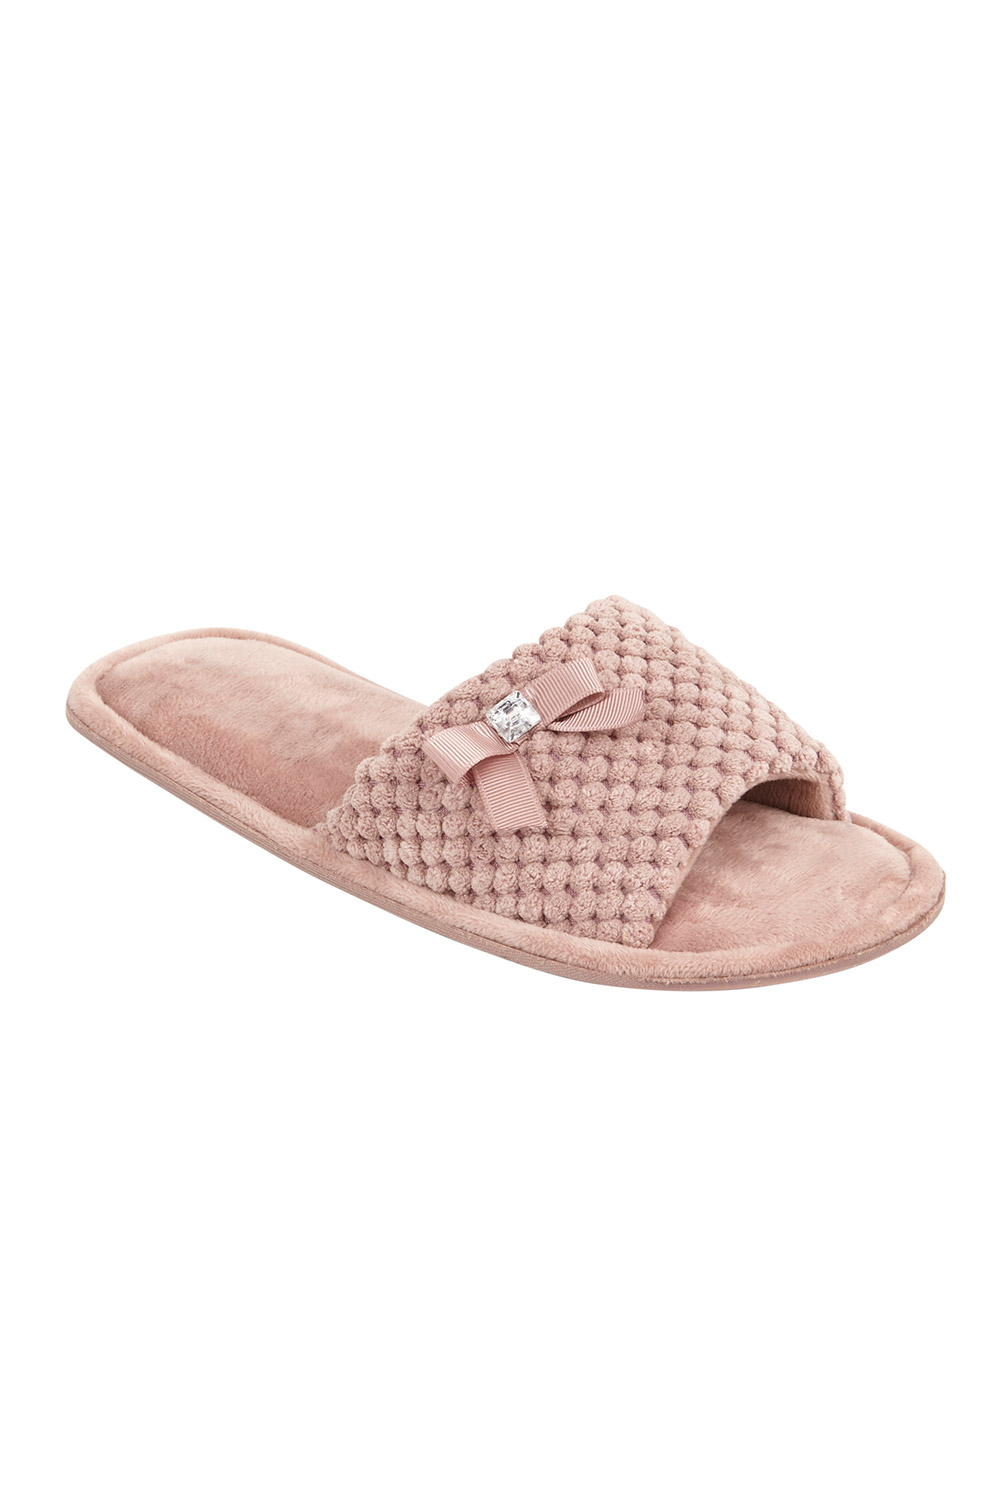 cheap pay with visa Closed Toe Mule Slippers professional amazing price low shipping fee cheap price free shipping low price bfxHh